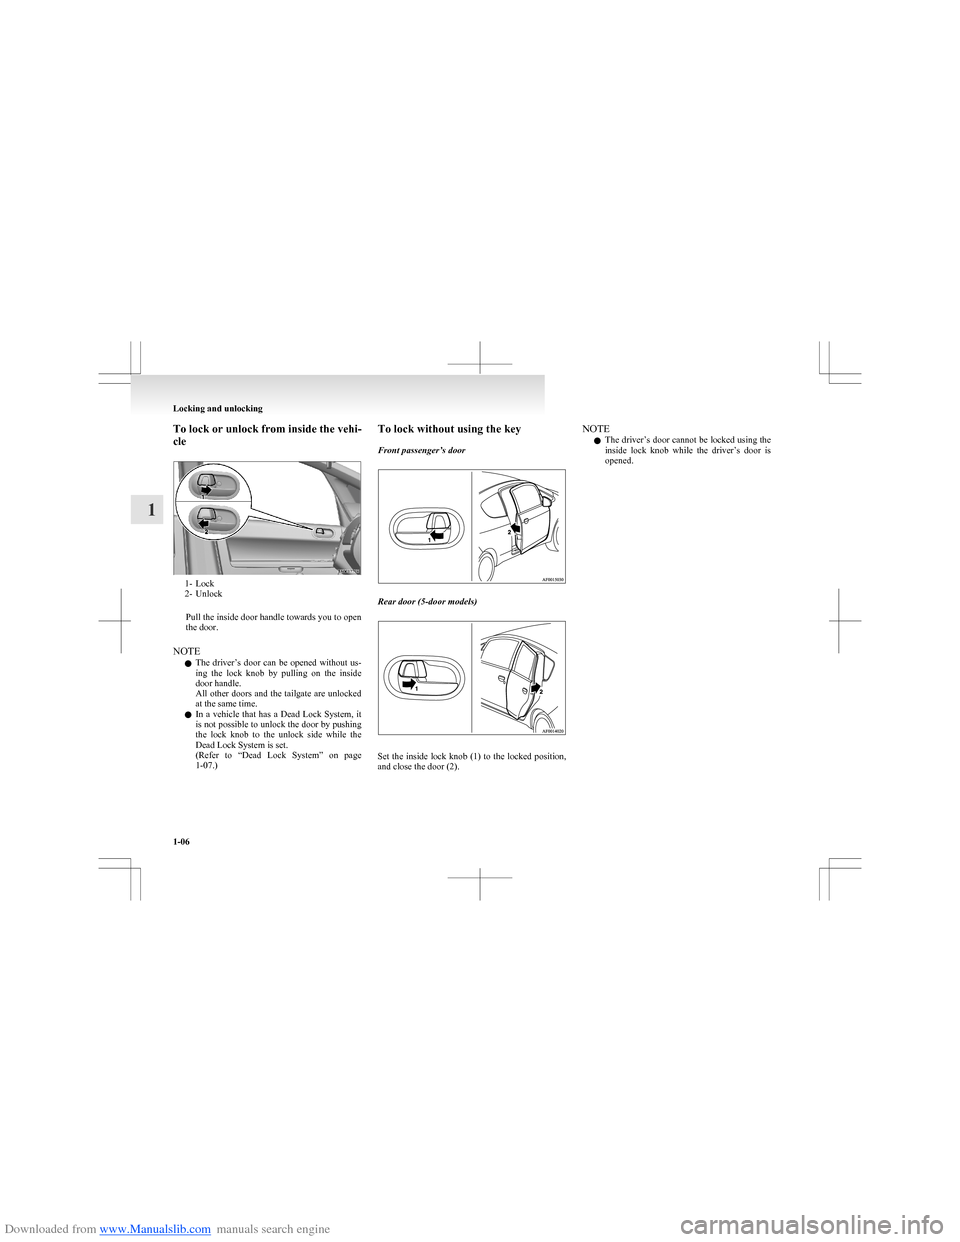 MITSUBISHI COLT 2009 10.G Owners Manual, Page 33